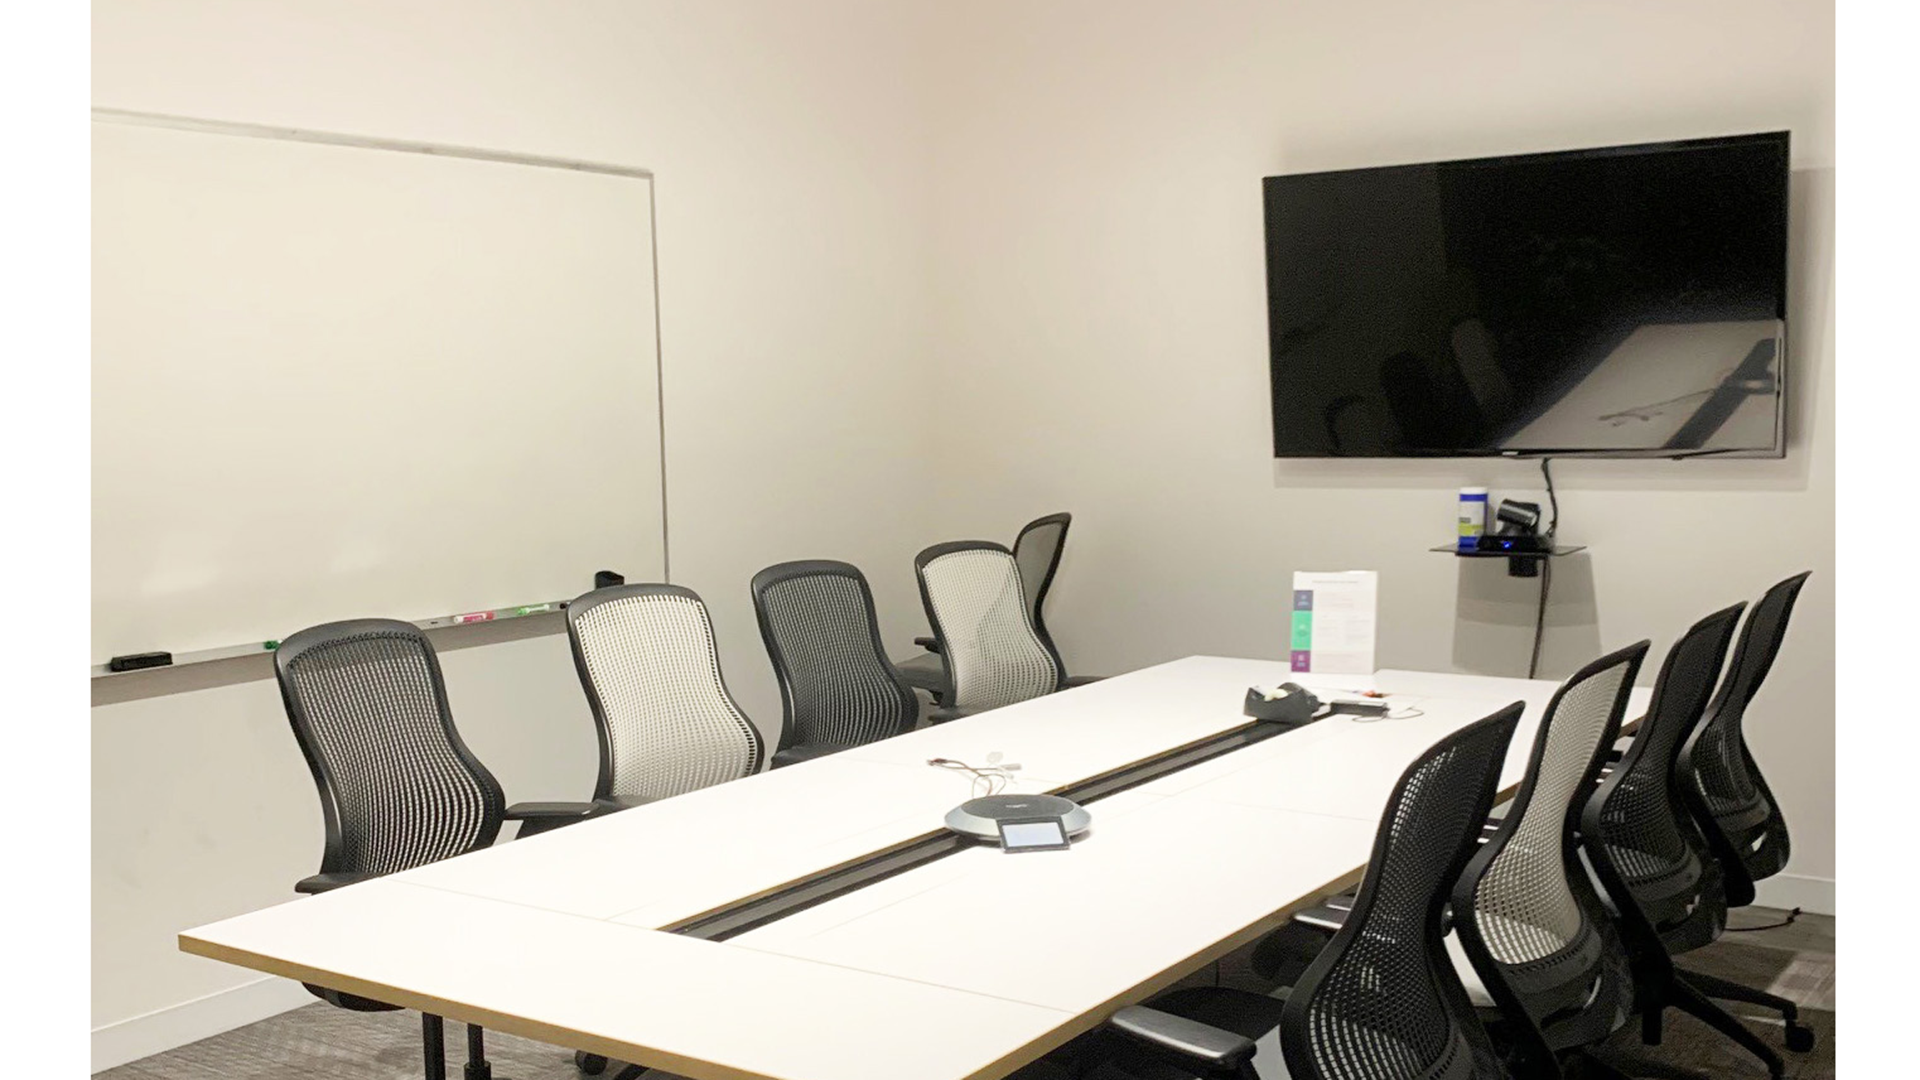 medium sized conference room